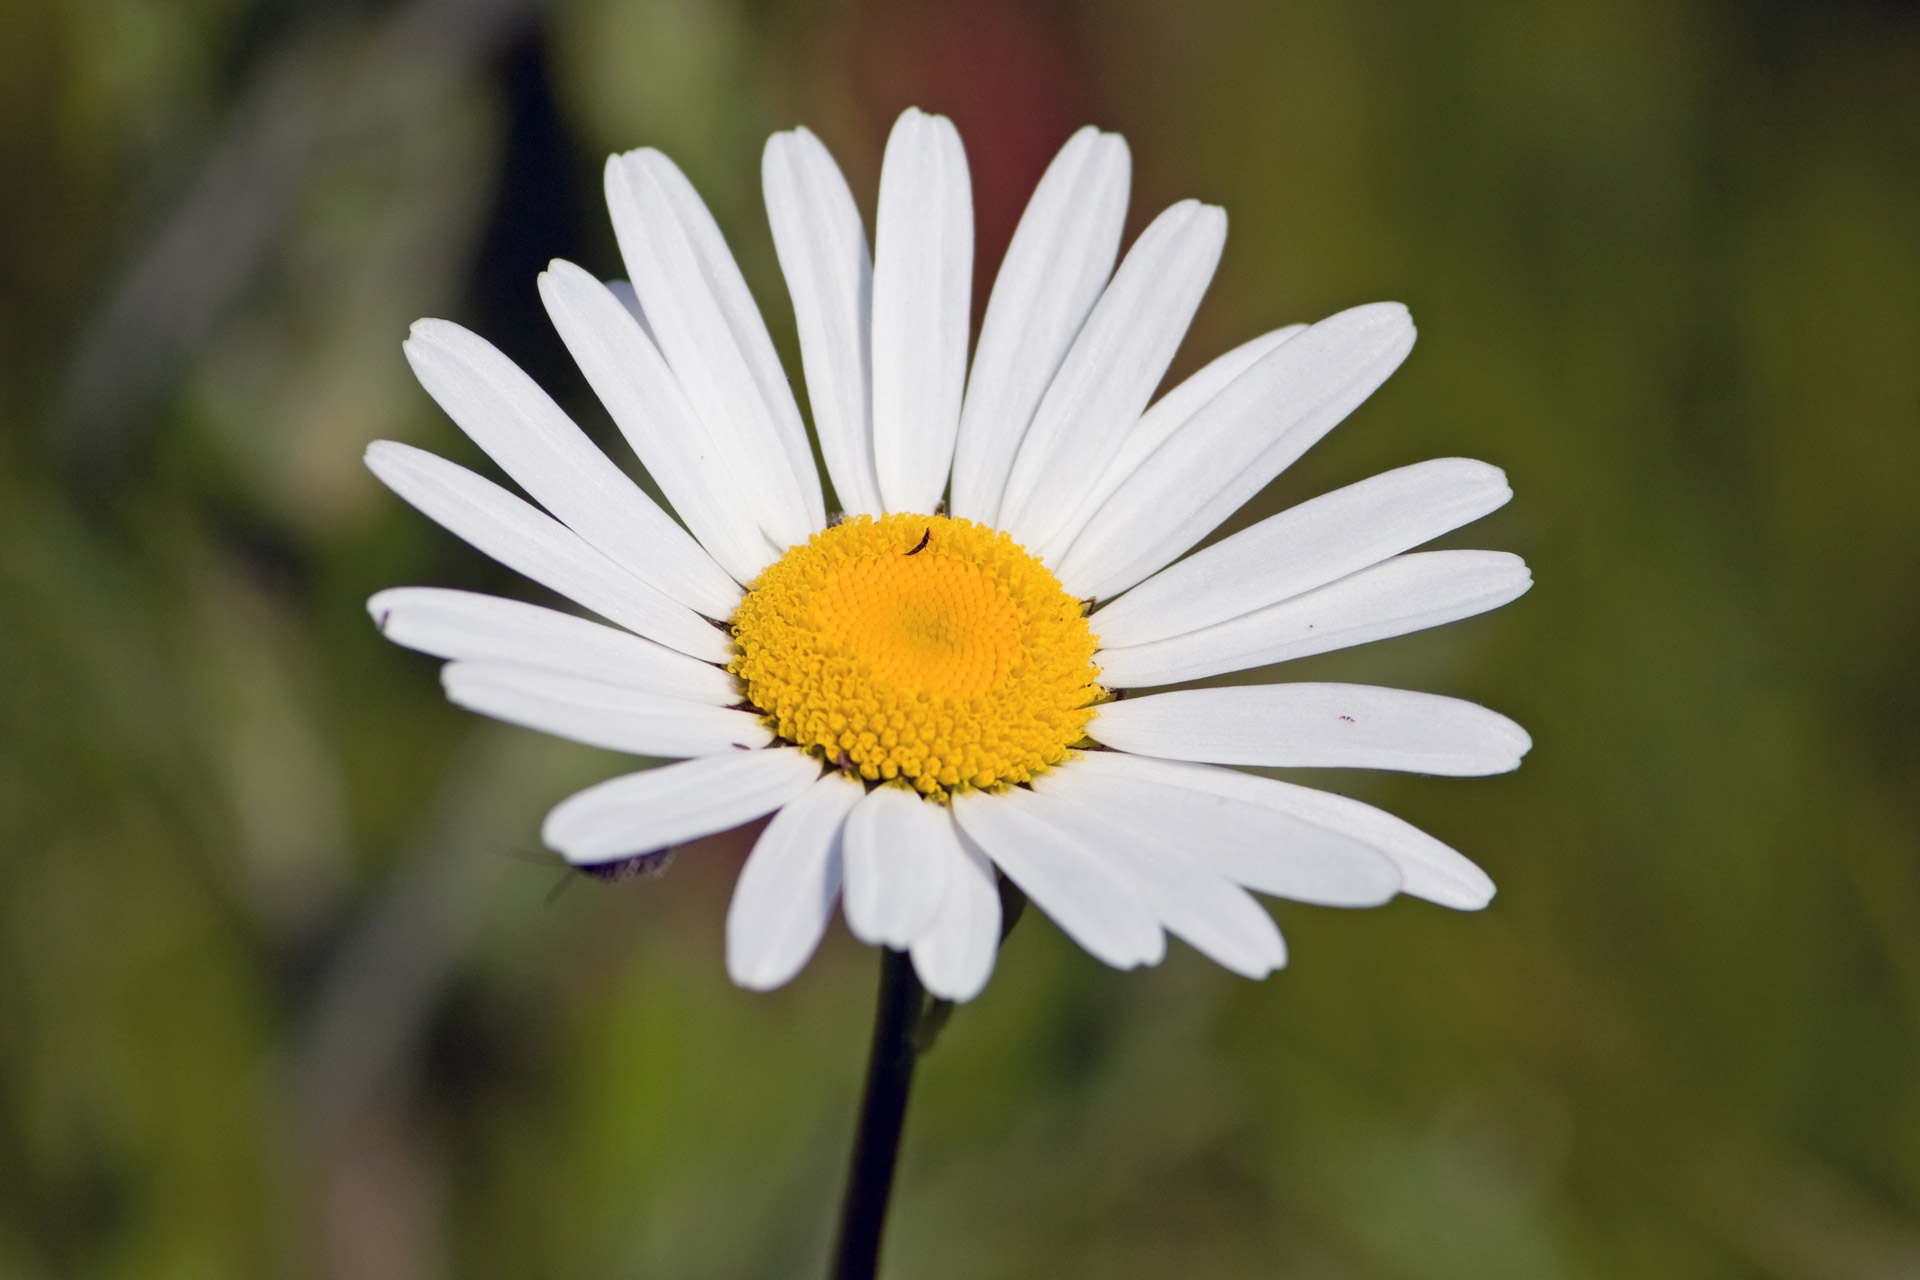 White Daisy Flower Free Stock Photo - Public Domain Pictures